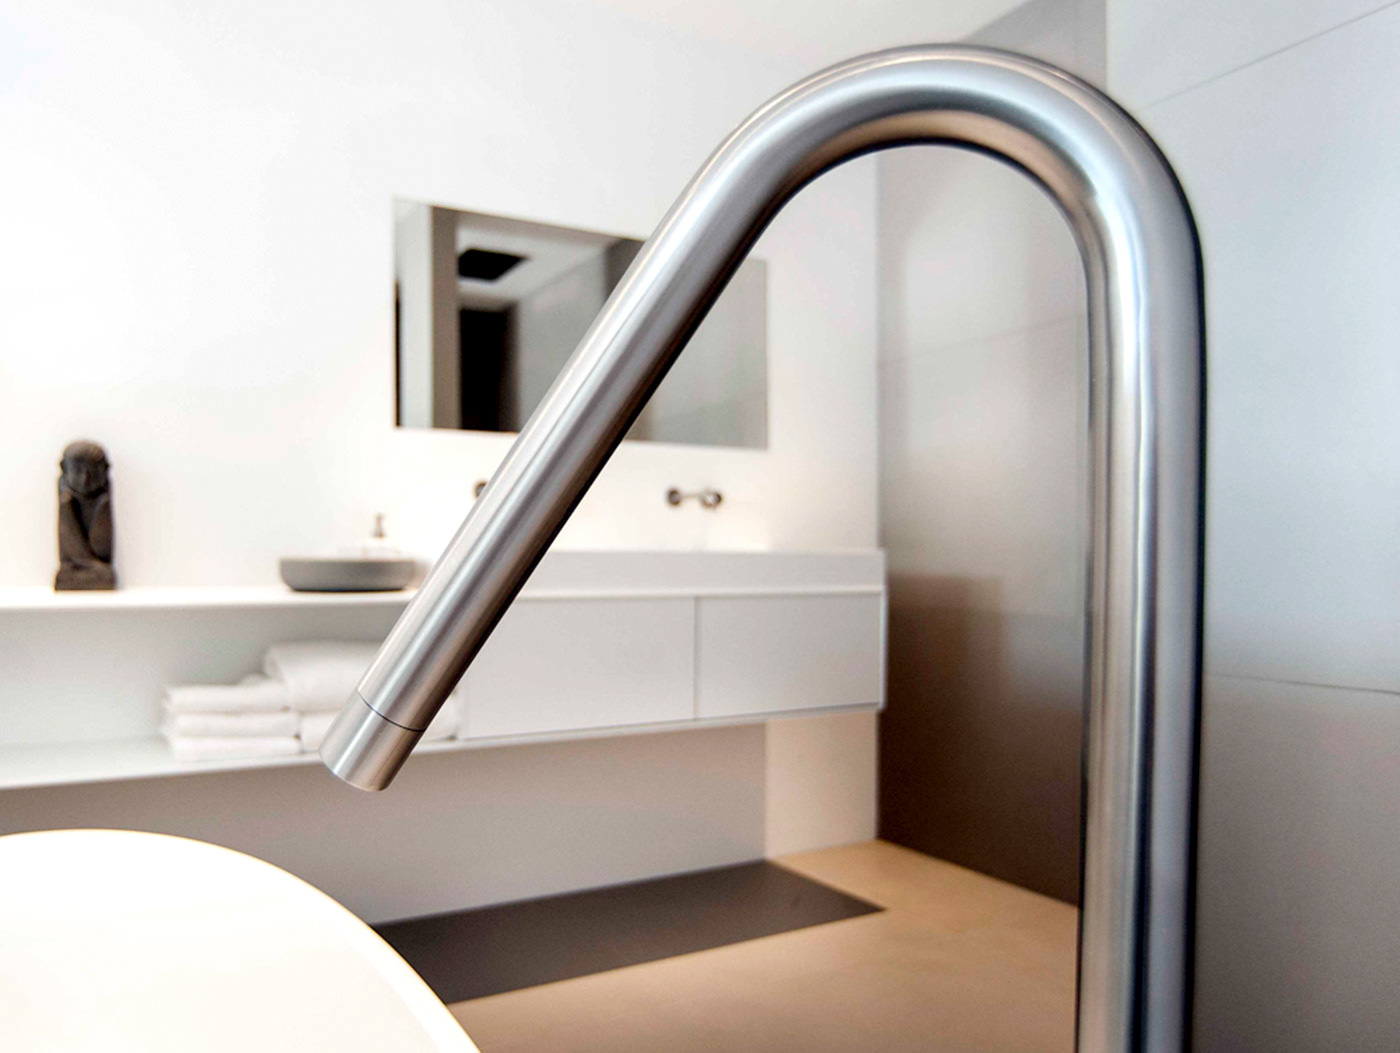 cocoon_freestanding_bath_spout_freestanding_bath_tub_massive_corian